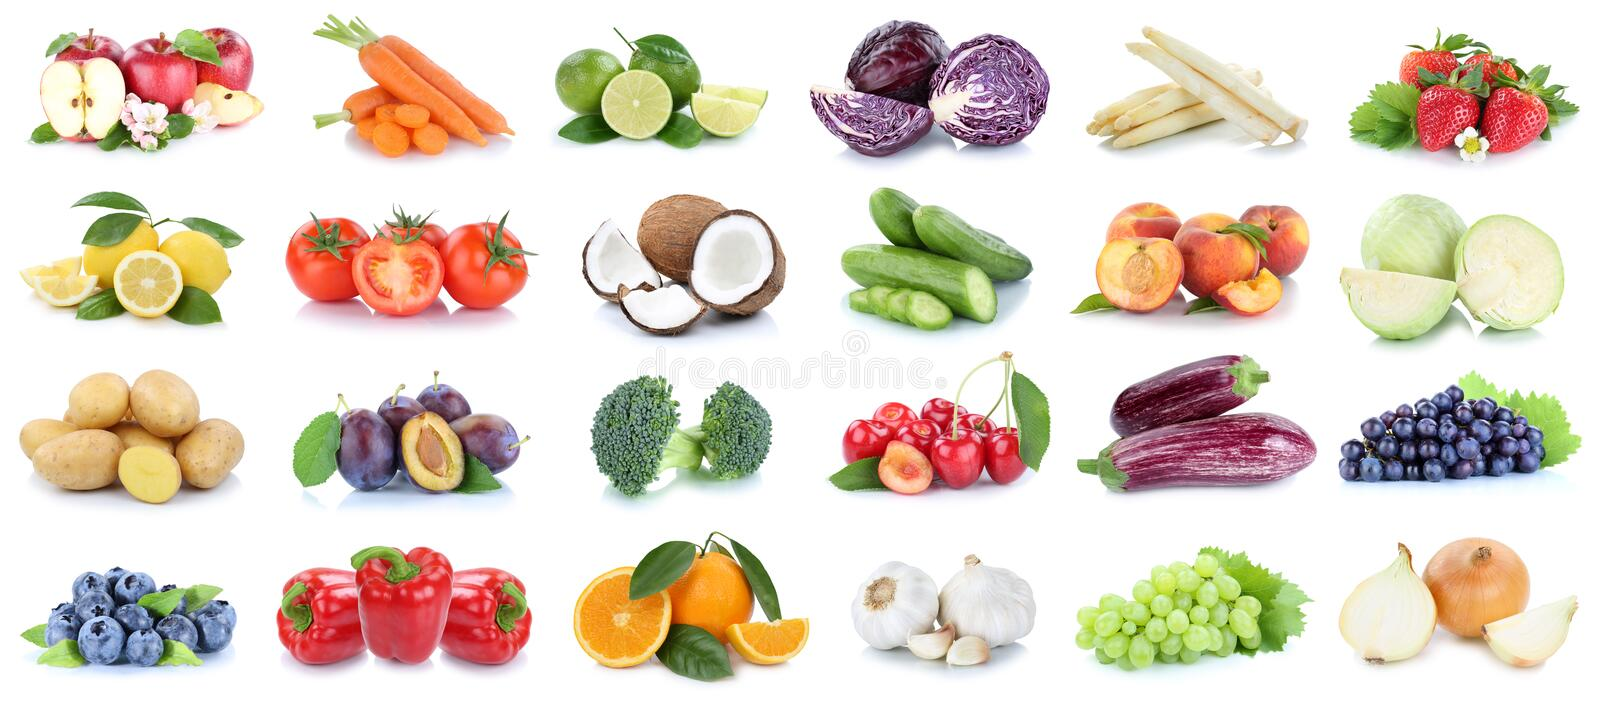 Fruits and vegetables collection apples oranges grapes vegetable royalty free stock image